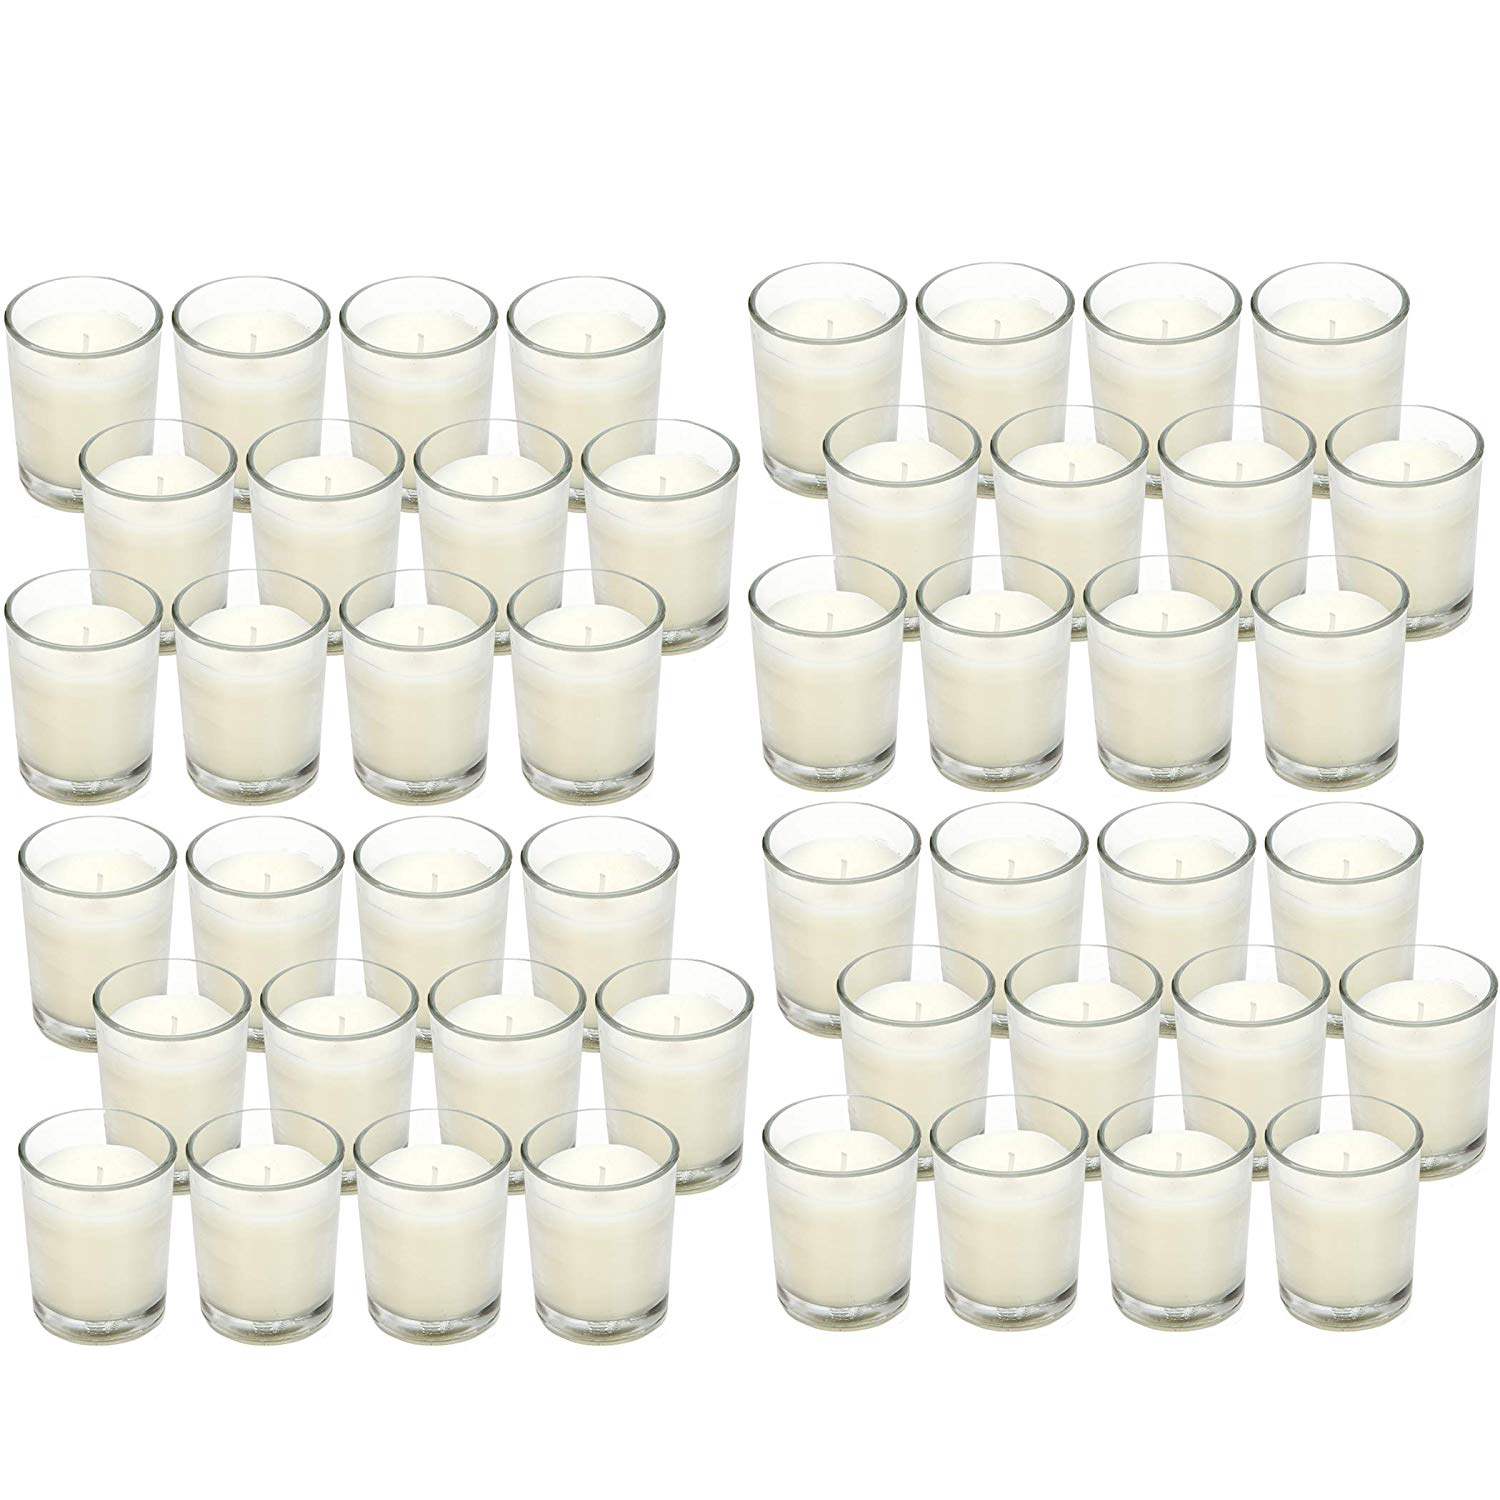 White Unscented Clear Glass Filled Votives